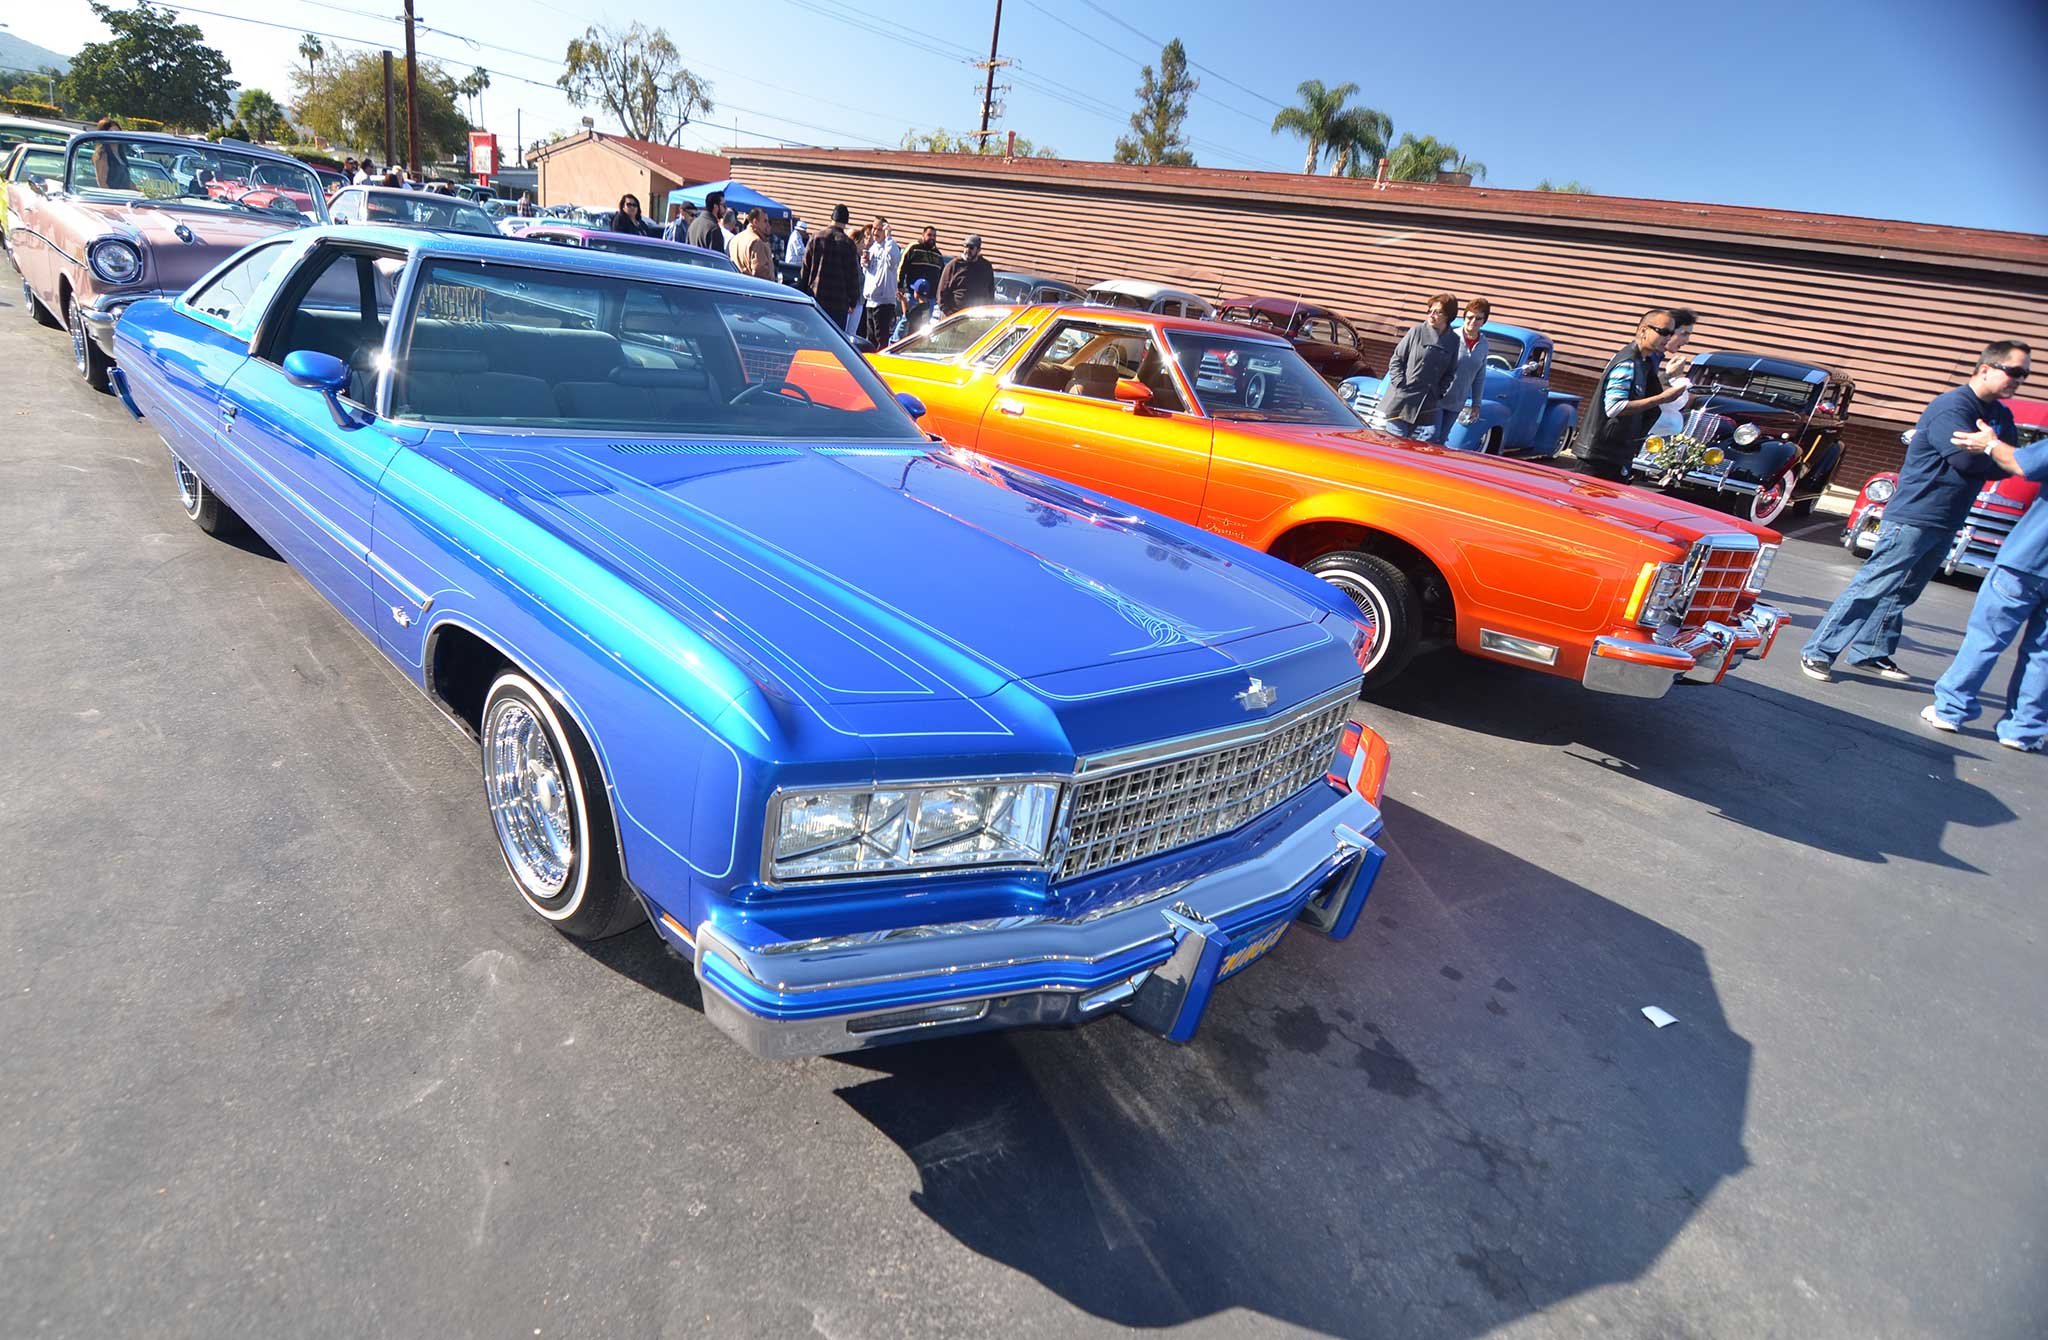 New Years Day Custom Car & Bike Show